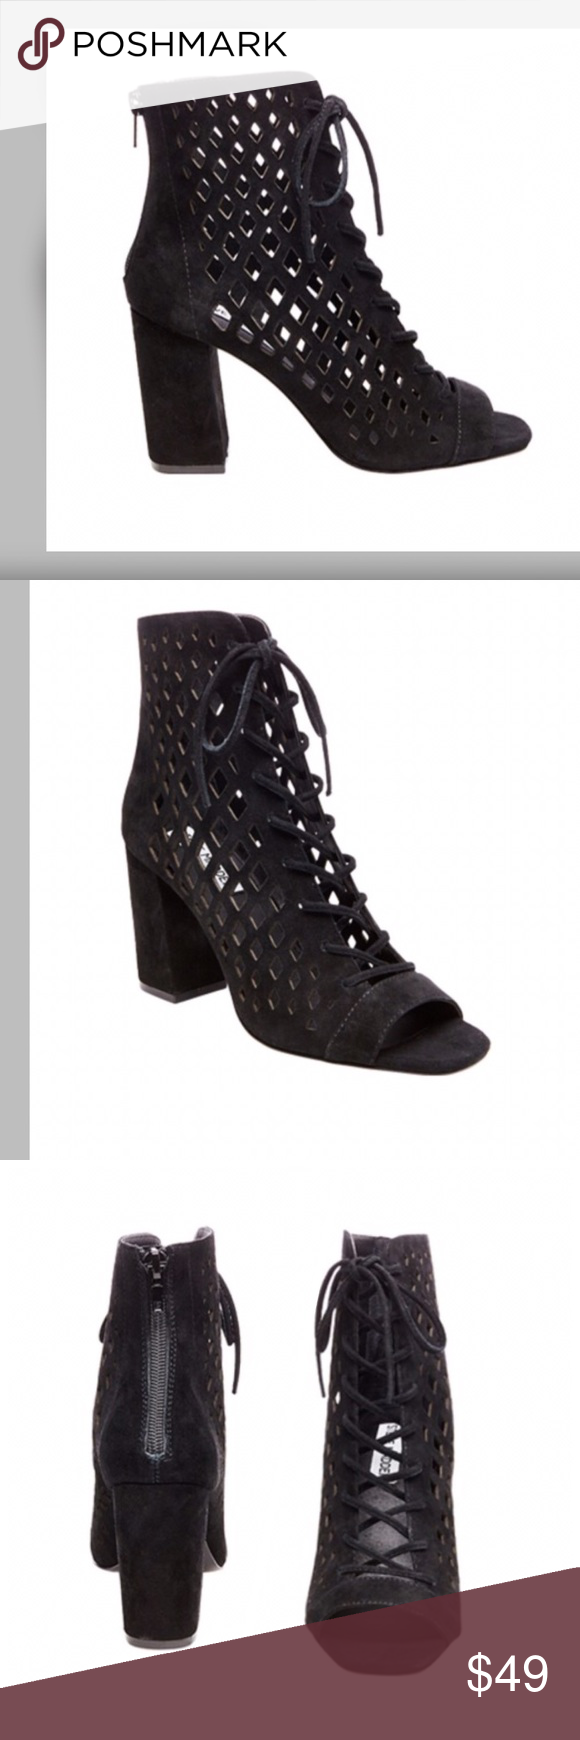 2b88a3888ed STEVE MADDEN Denay Ankle Boot! Worn one time! This edgy bootie is ...